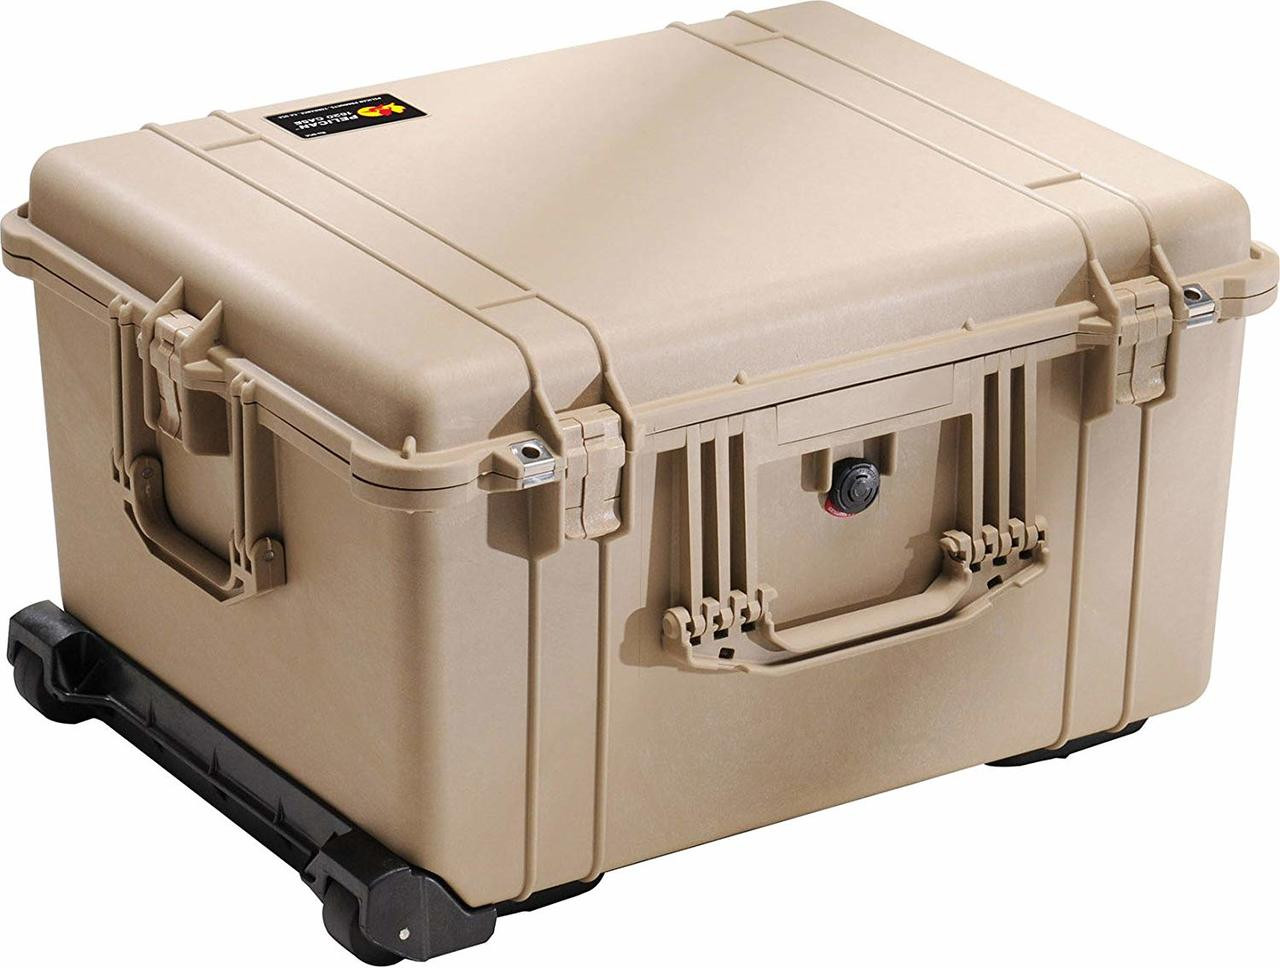 Pelican 1620 Protector - Large Case - Waterproof, Crushproof, Rustproof, Hard Case with Optional Foam Insert, Padded Divider or TrekPak Divider System, 25 x 20 x 14, 27 lbs (w-out foam, 22 lbs)